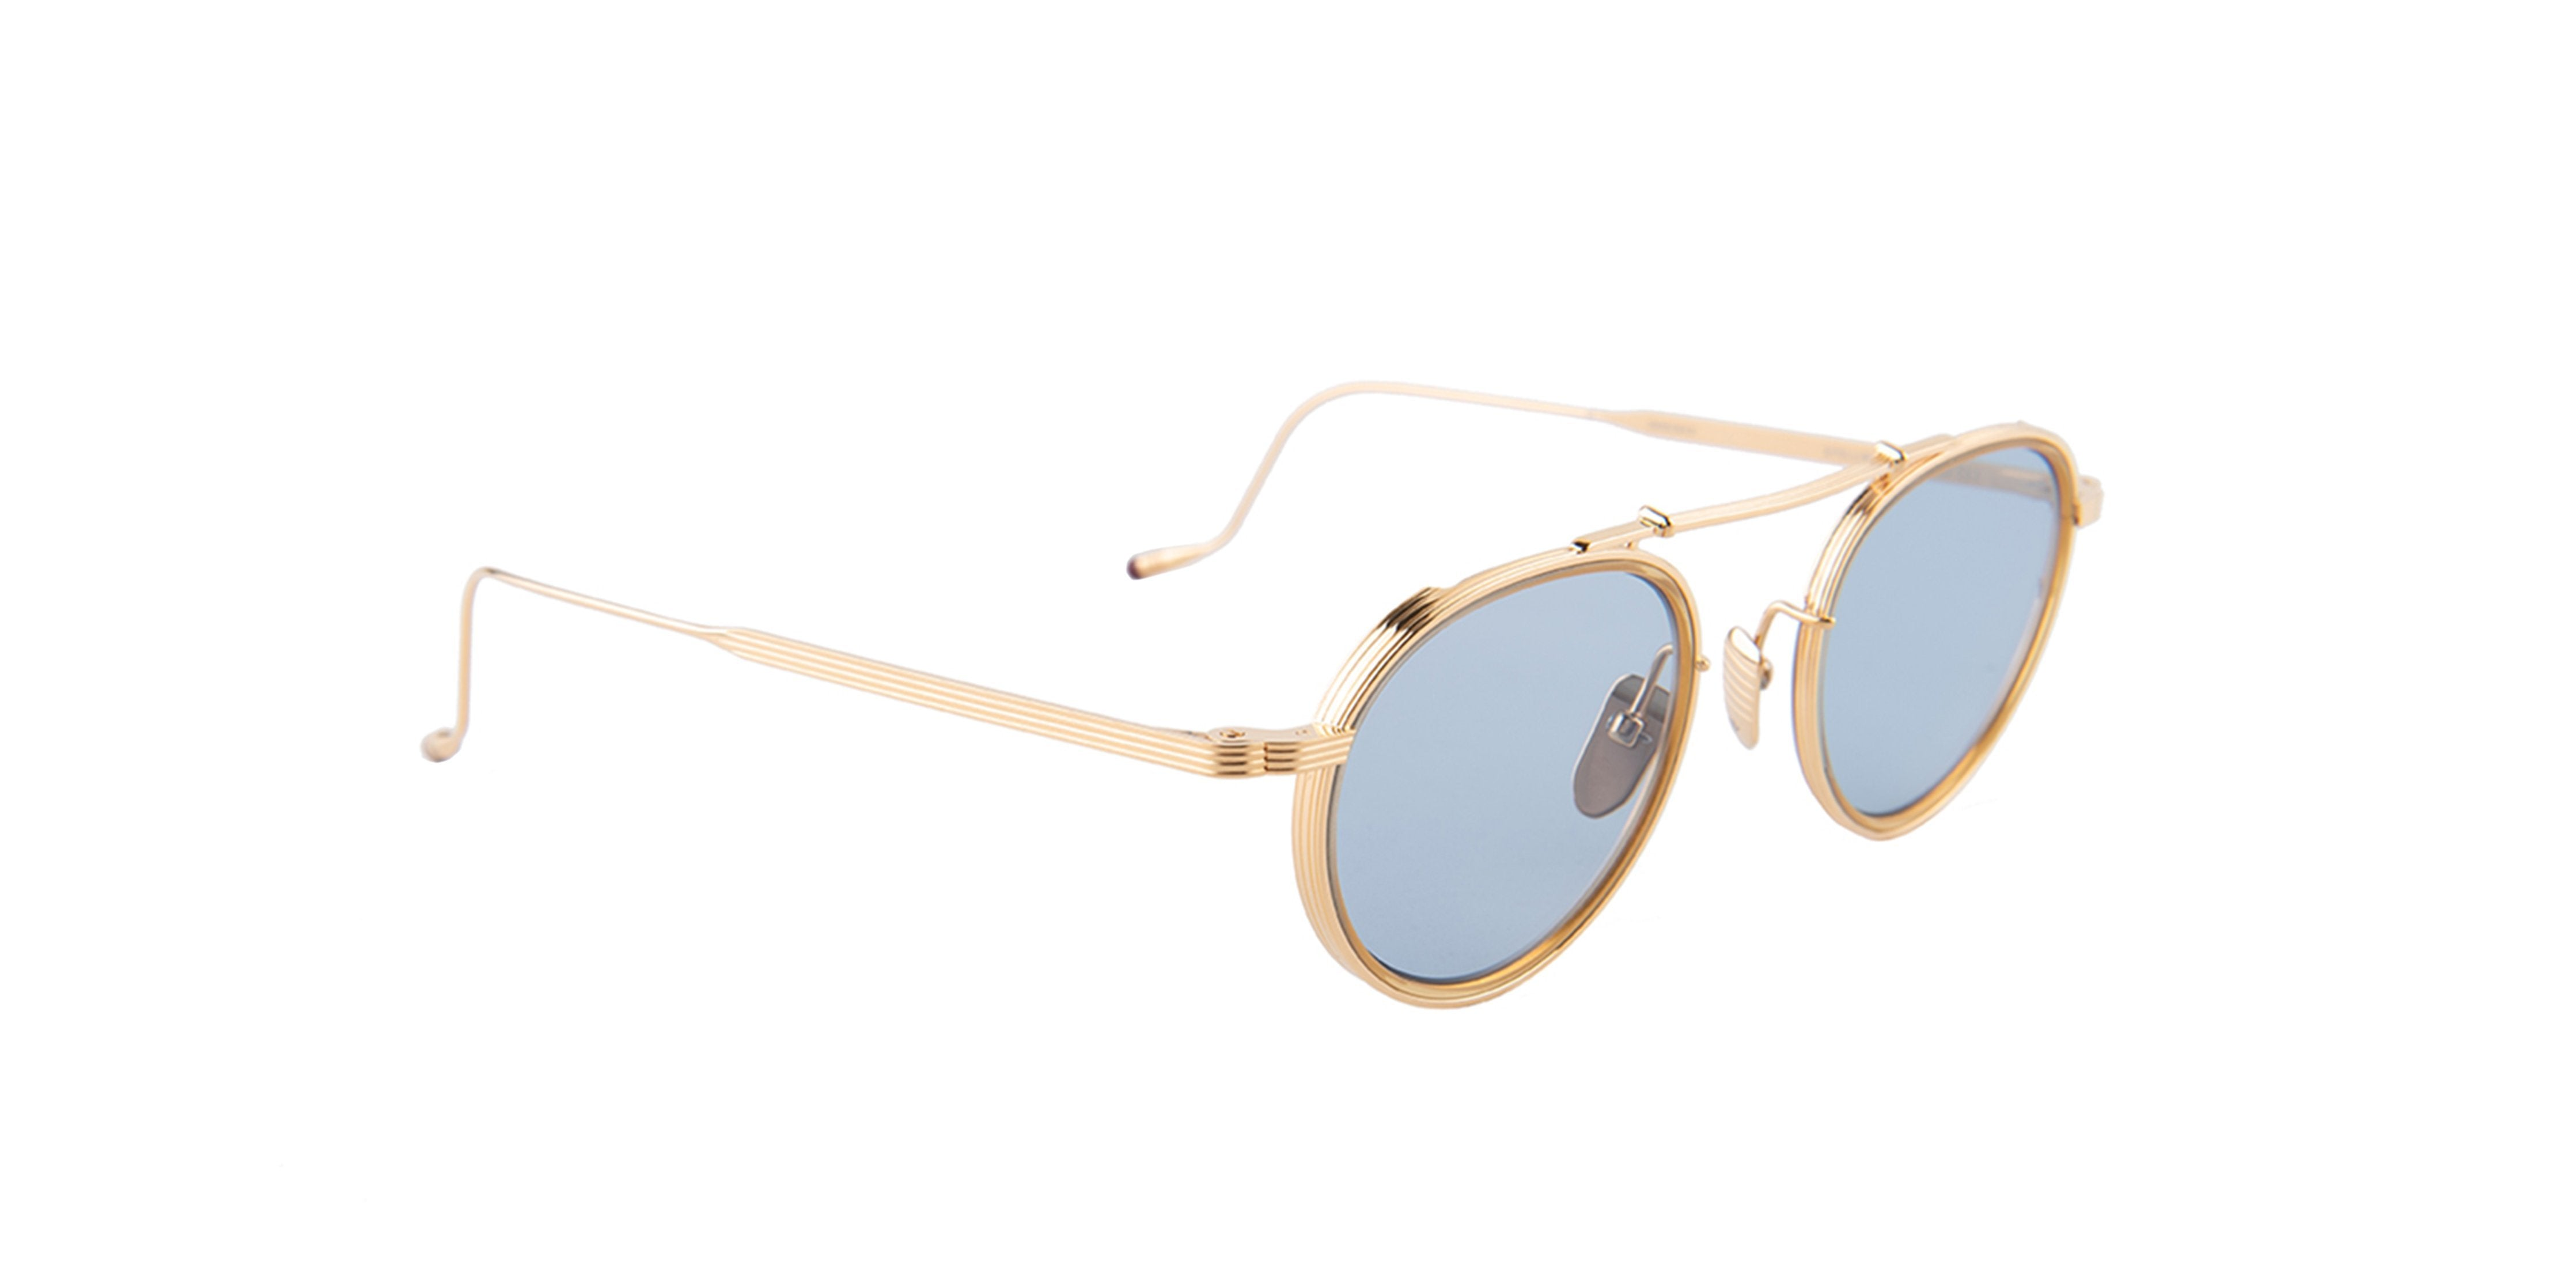 Jacques Marie Mage - Apollinaire Gold/Blue Round Unisex Sunglasses - 48mm-Sunglasses-Designer Eyes